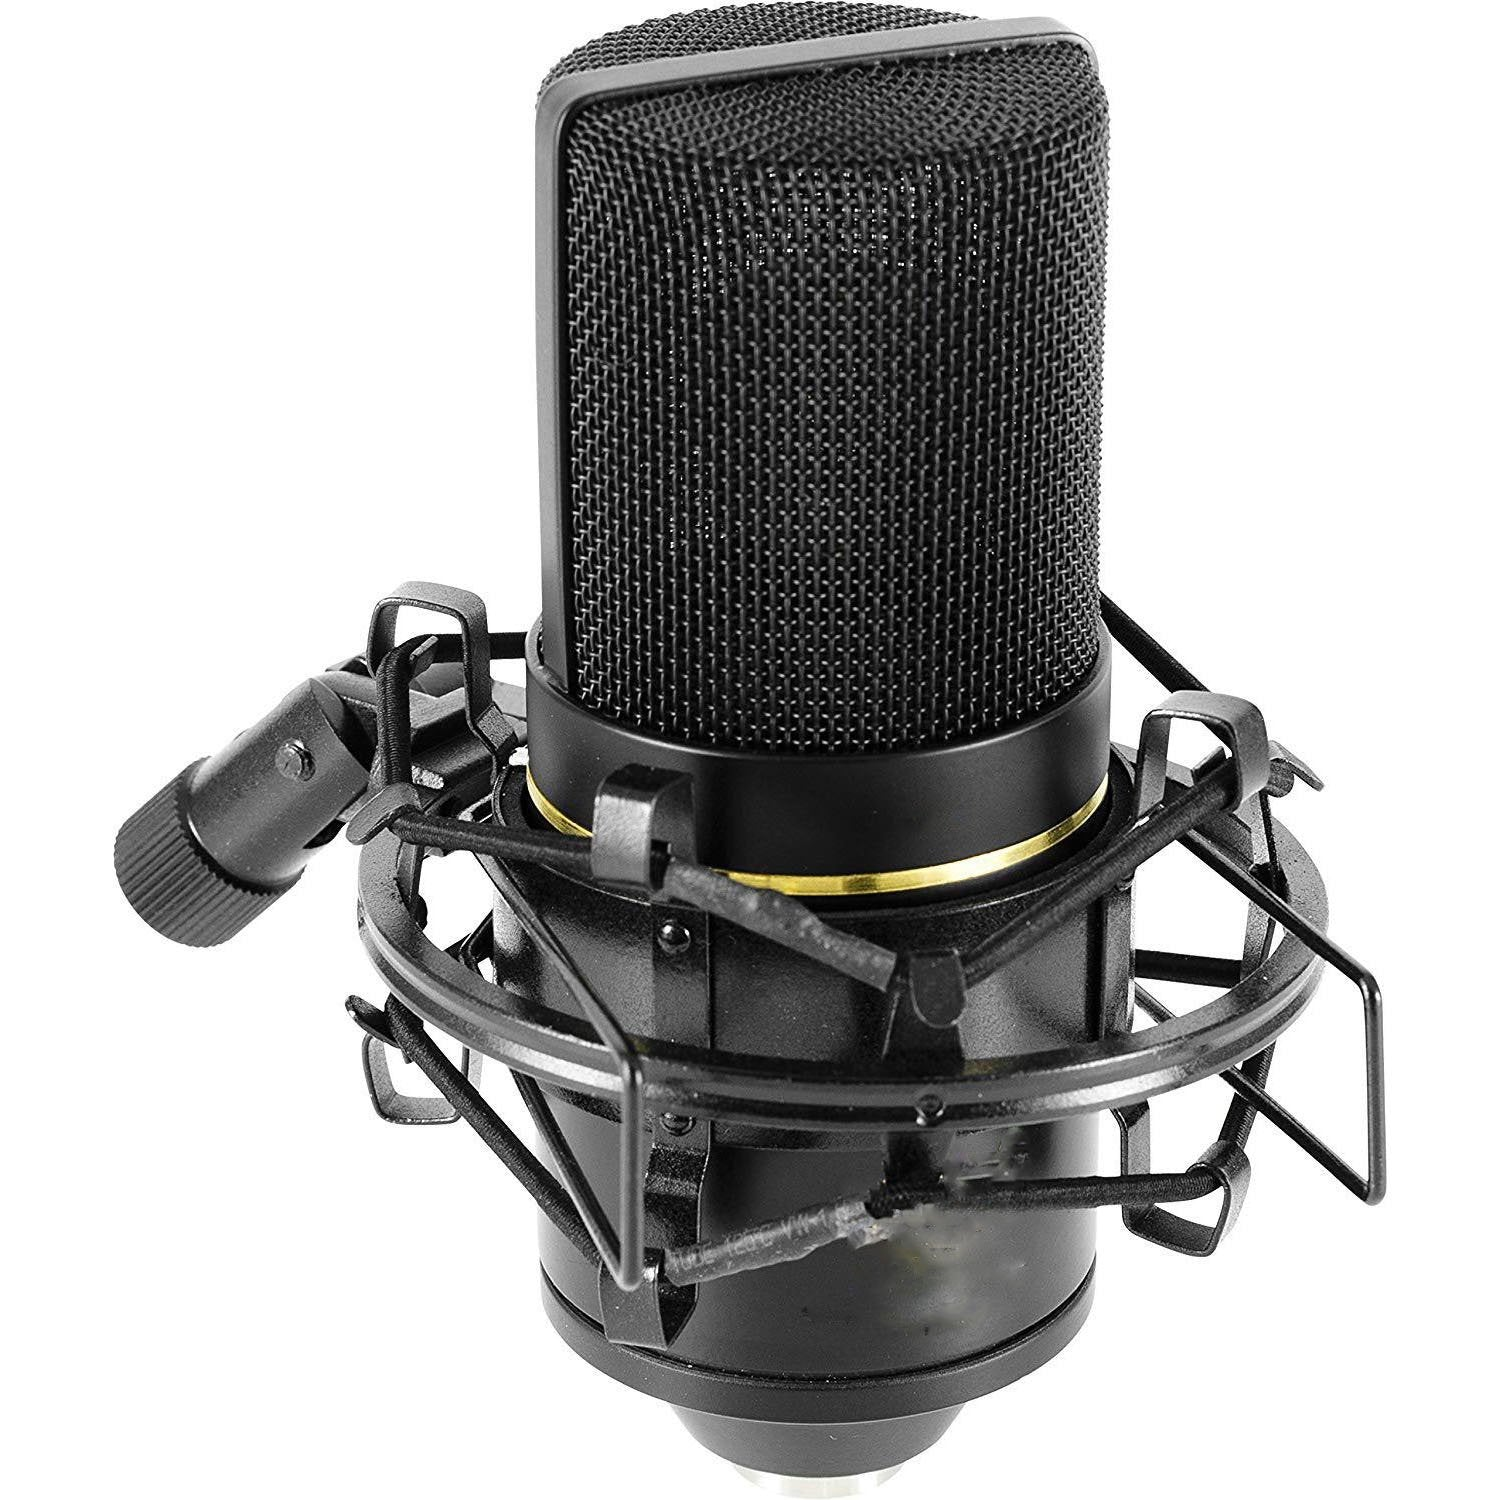 Low Noise With Balanced Microphone